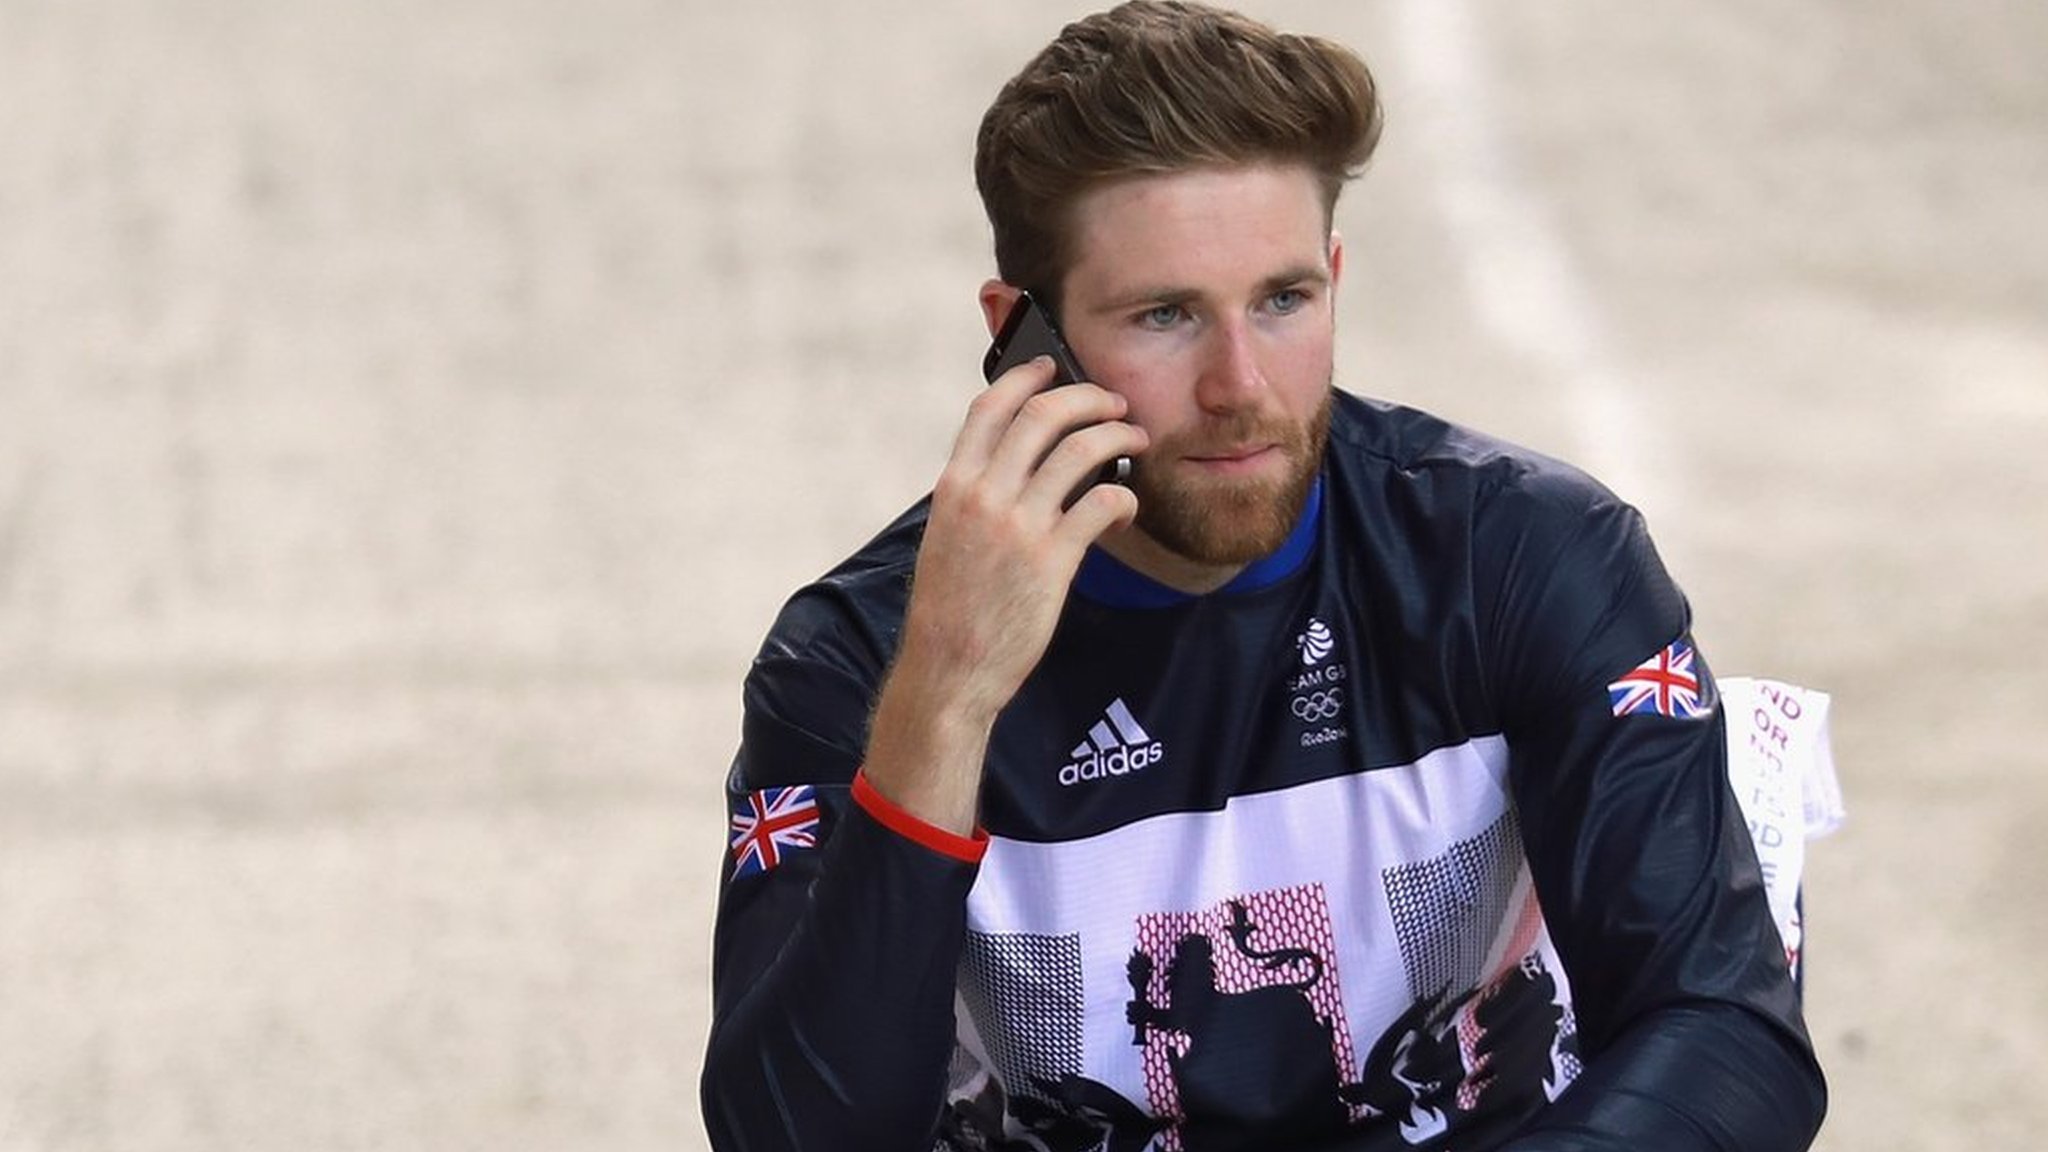 Liam Phillips: Former BMX world champion retires from the sport